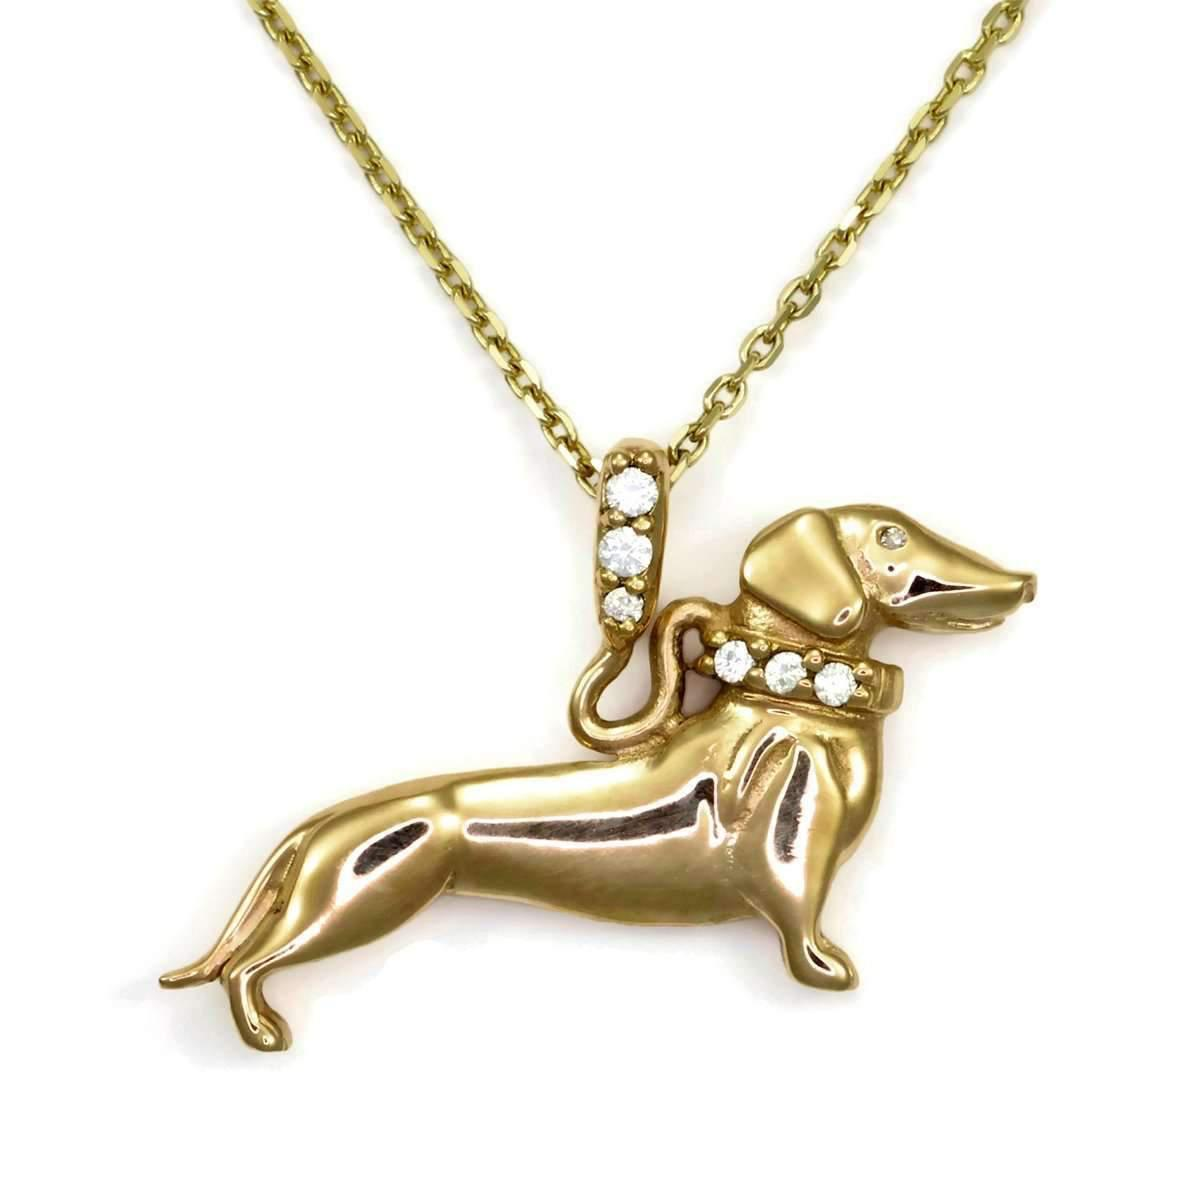 Donna Pizarro Designs 14kt Diamond Long Hair Dachshund Necklace 3nso4